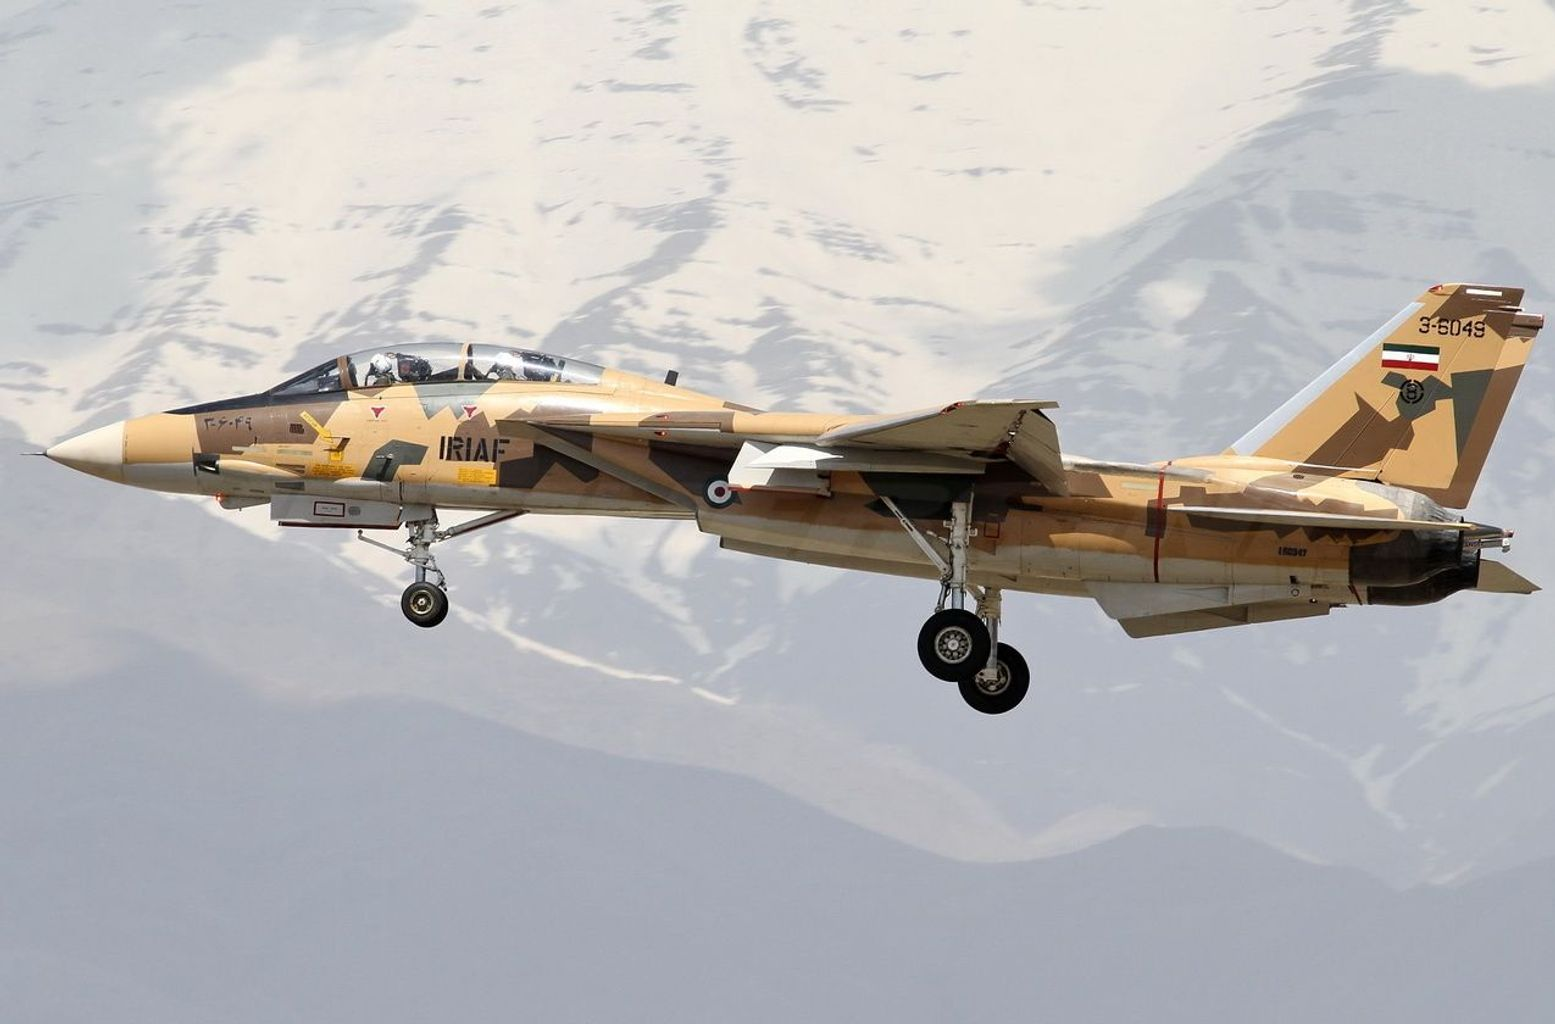 What Were the Mach 10 UFOs That Iran's Jets Encountered?